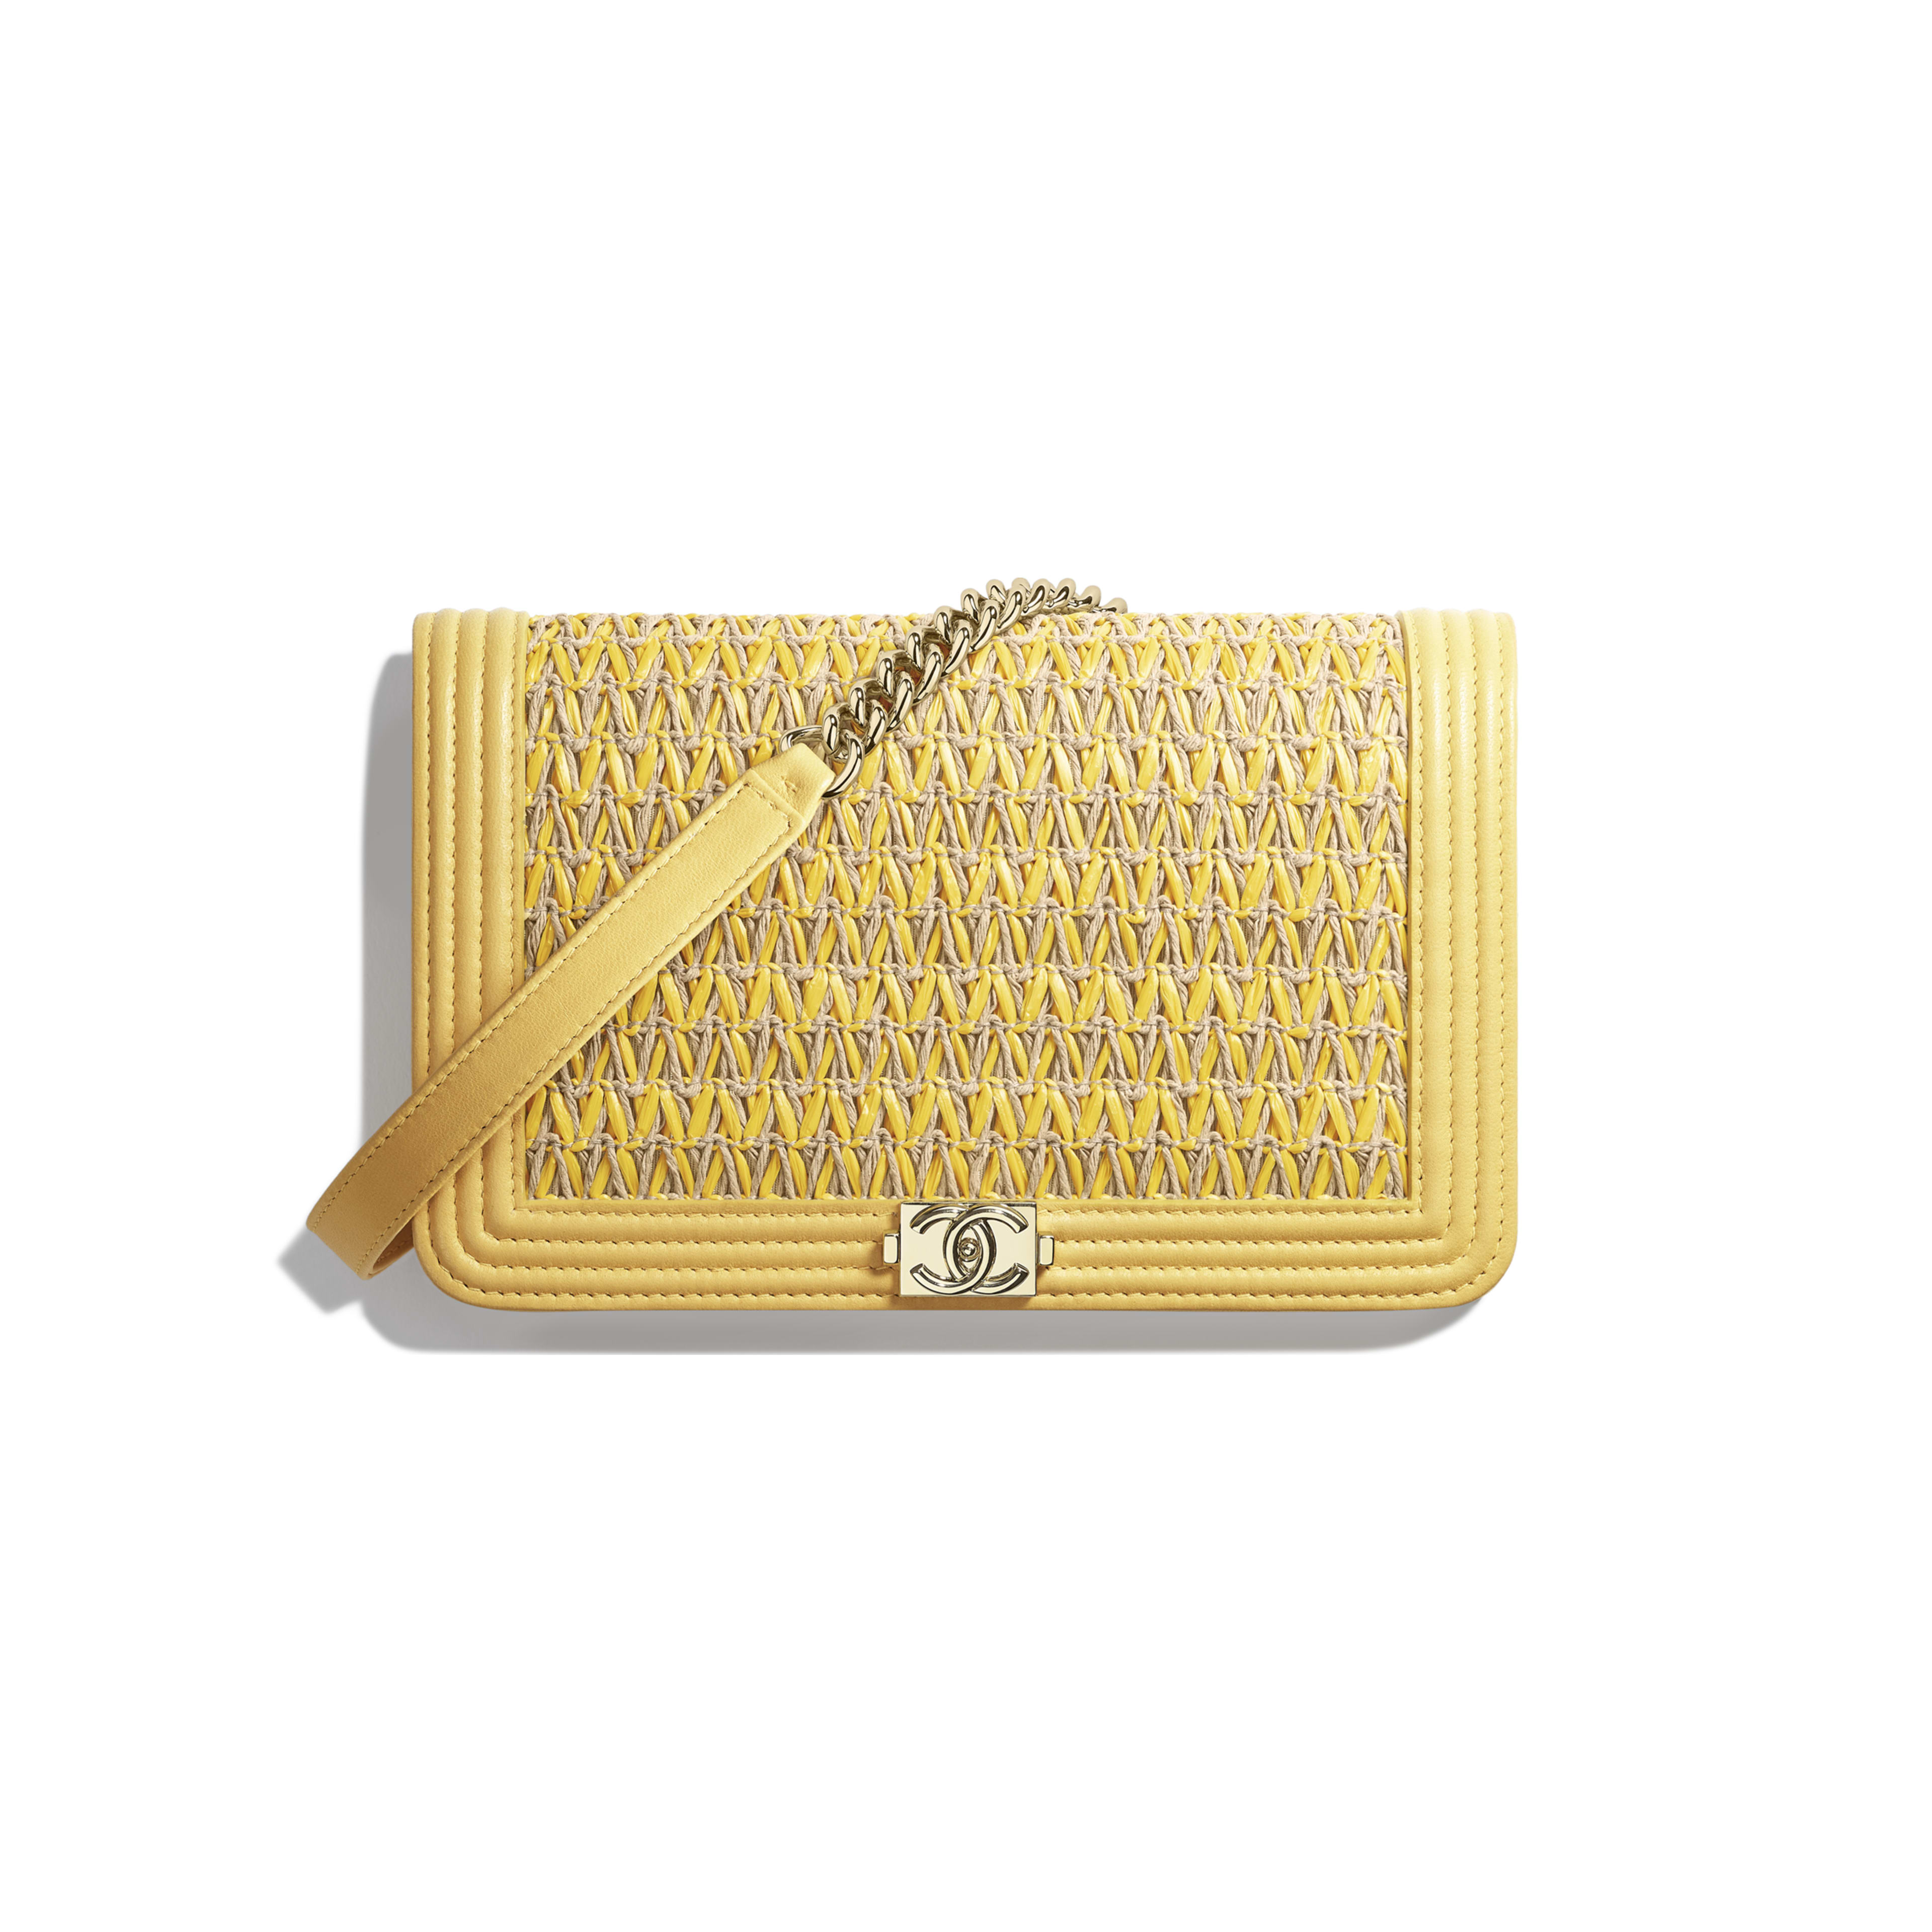 BOY CHANEL Wallet on Chain - Yellow & Beige - Cotton, Lambskin & Gold-Tone Metal - Default view - see full sized version